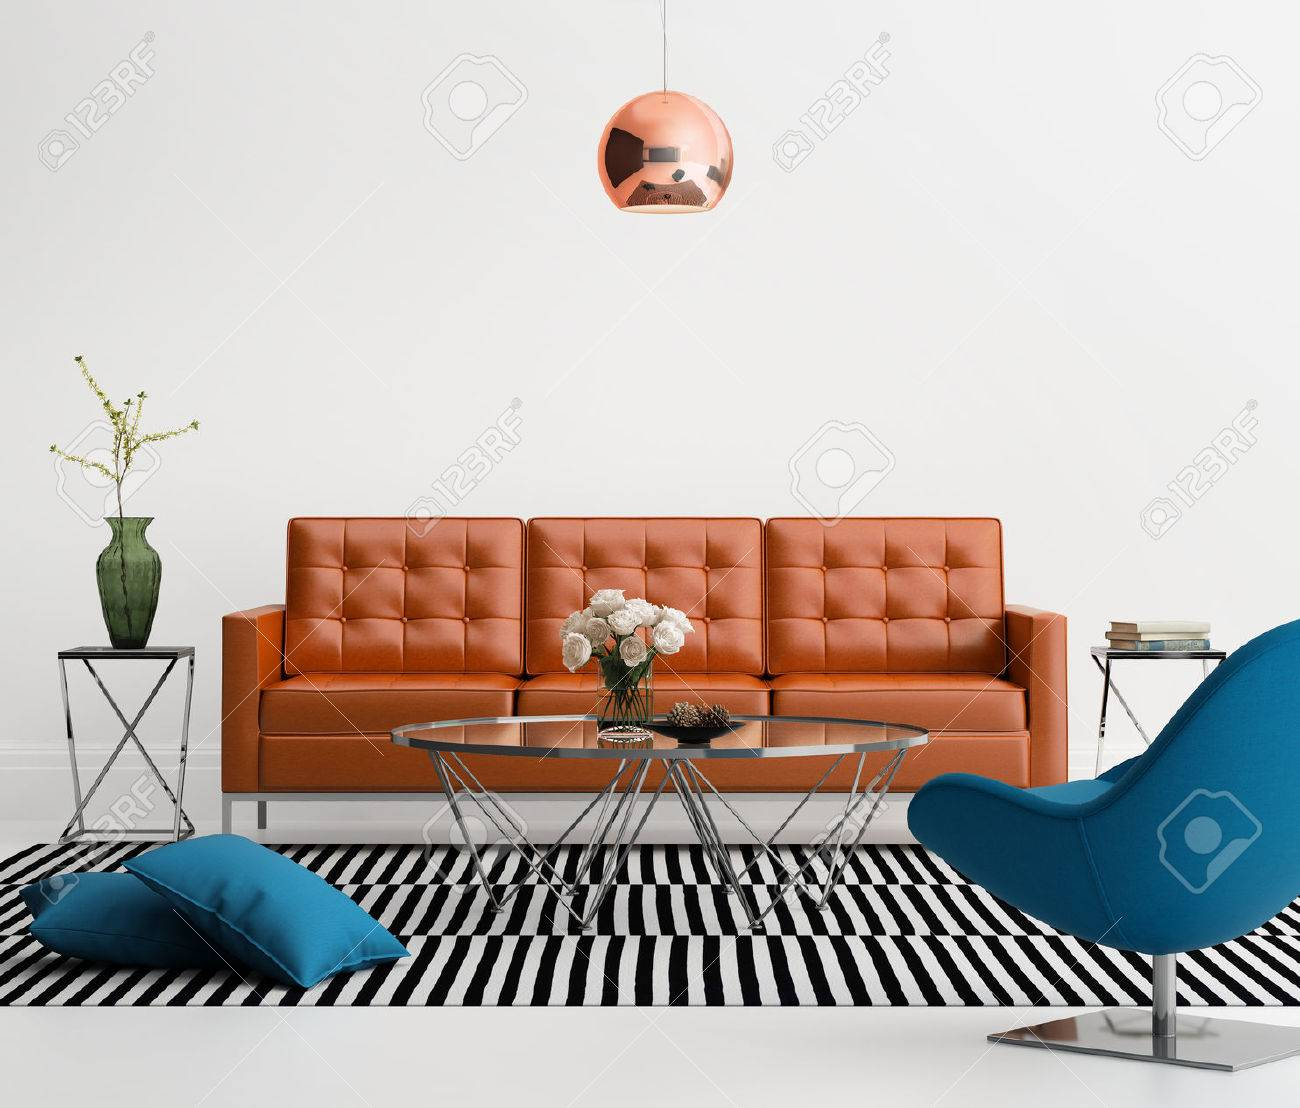 Contemporary living room with orange leather sofa